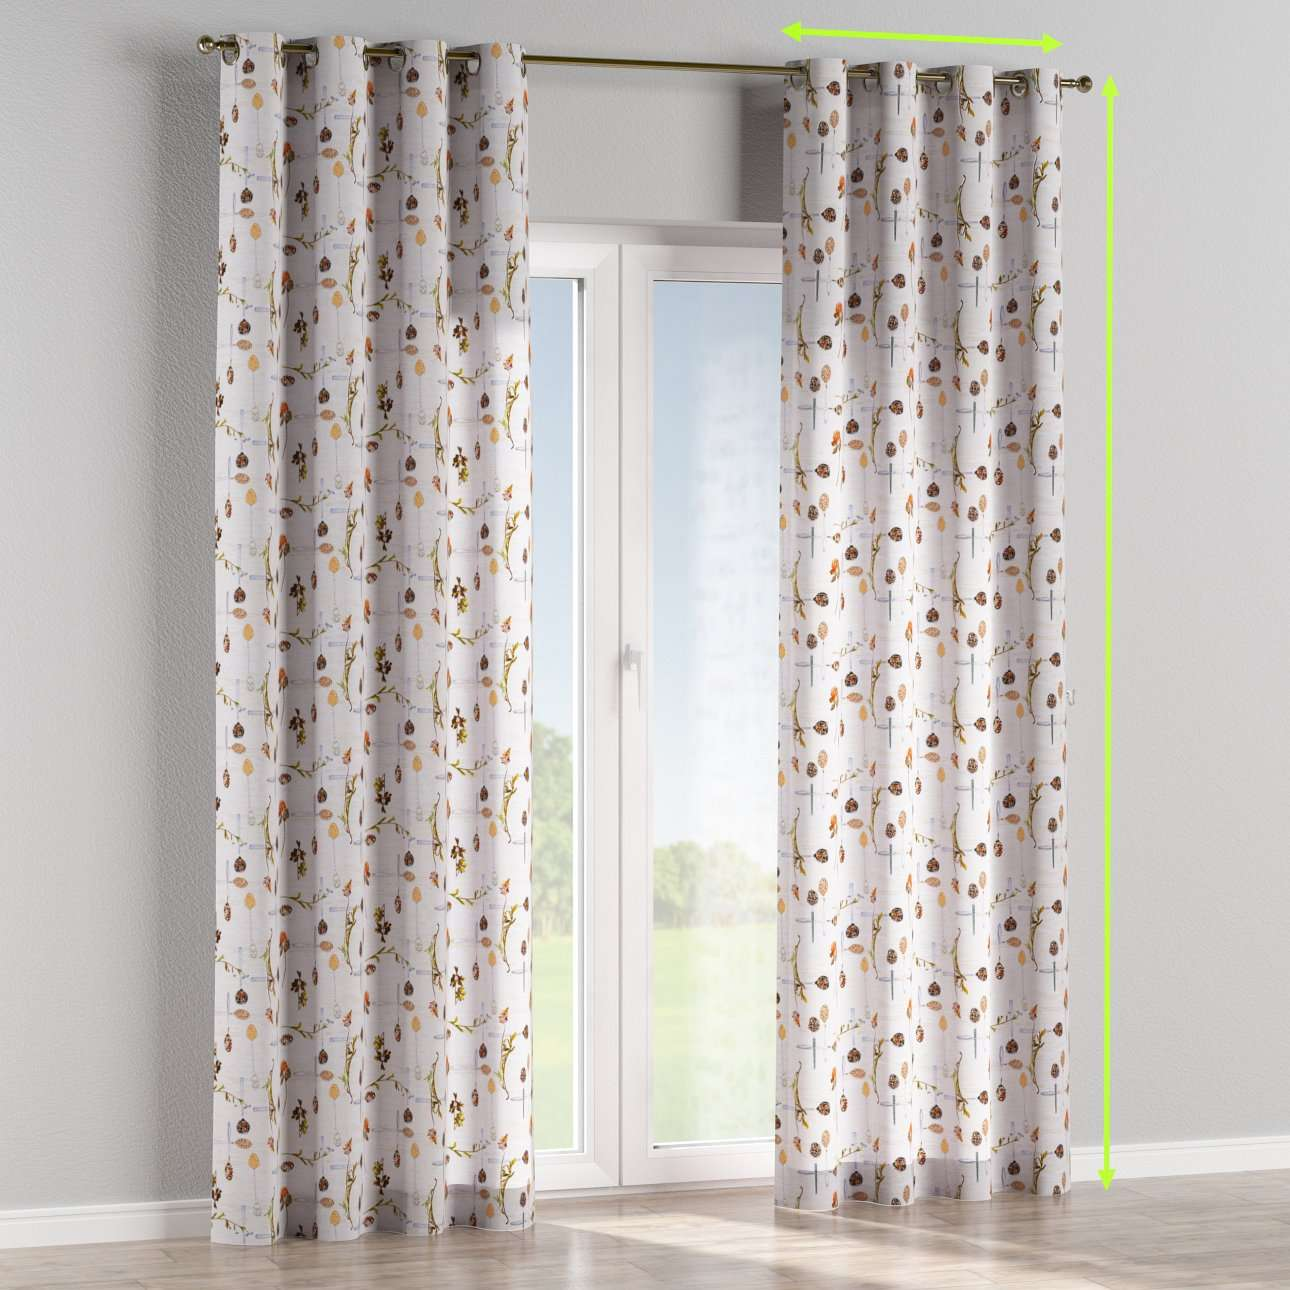 Eyelet curtains in collection Flowers, fabric: 140-11